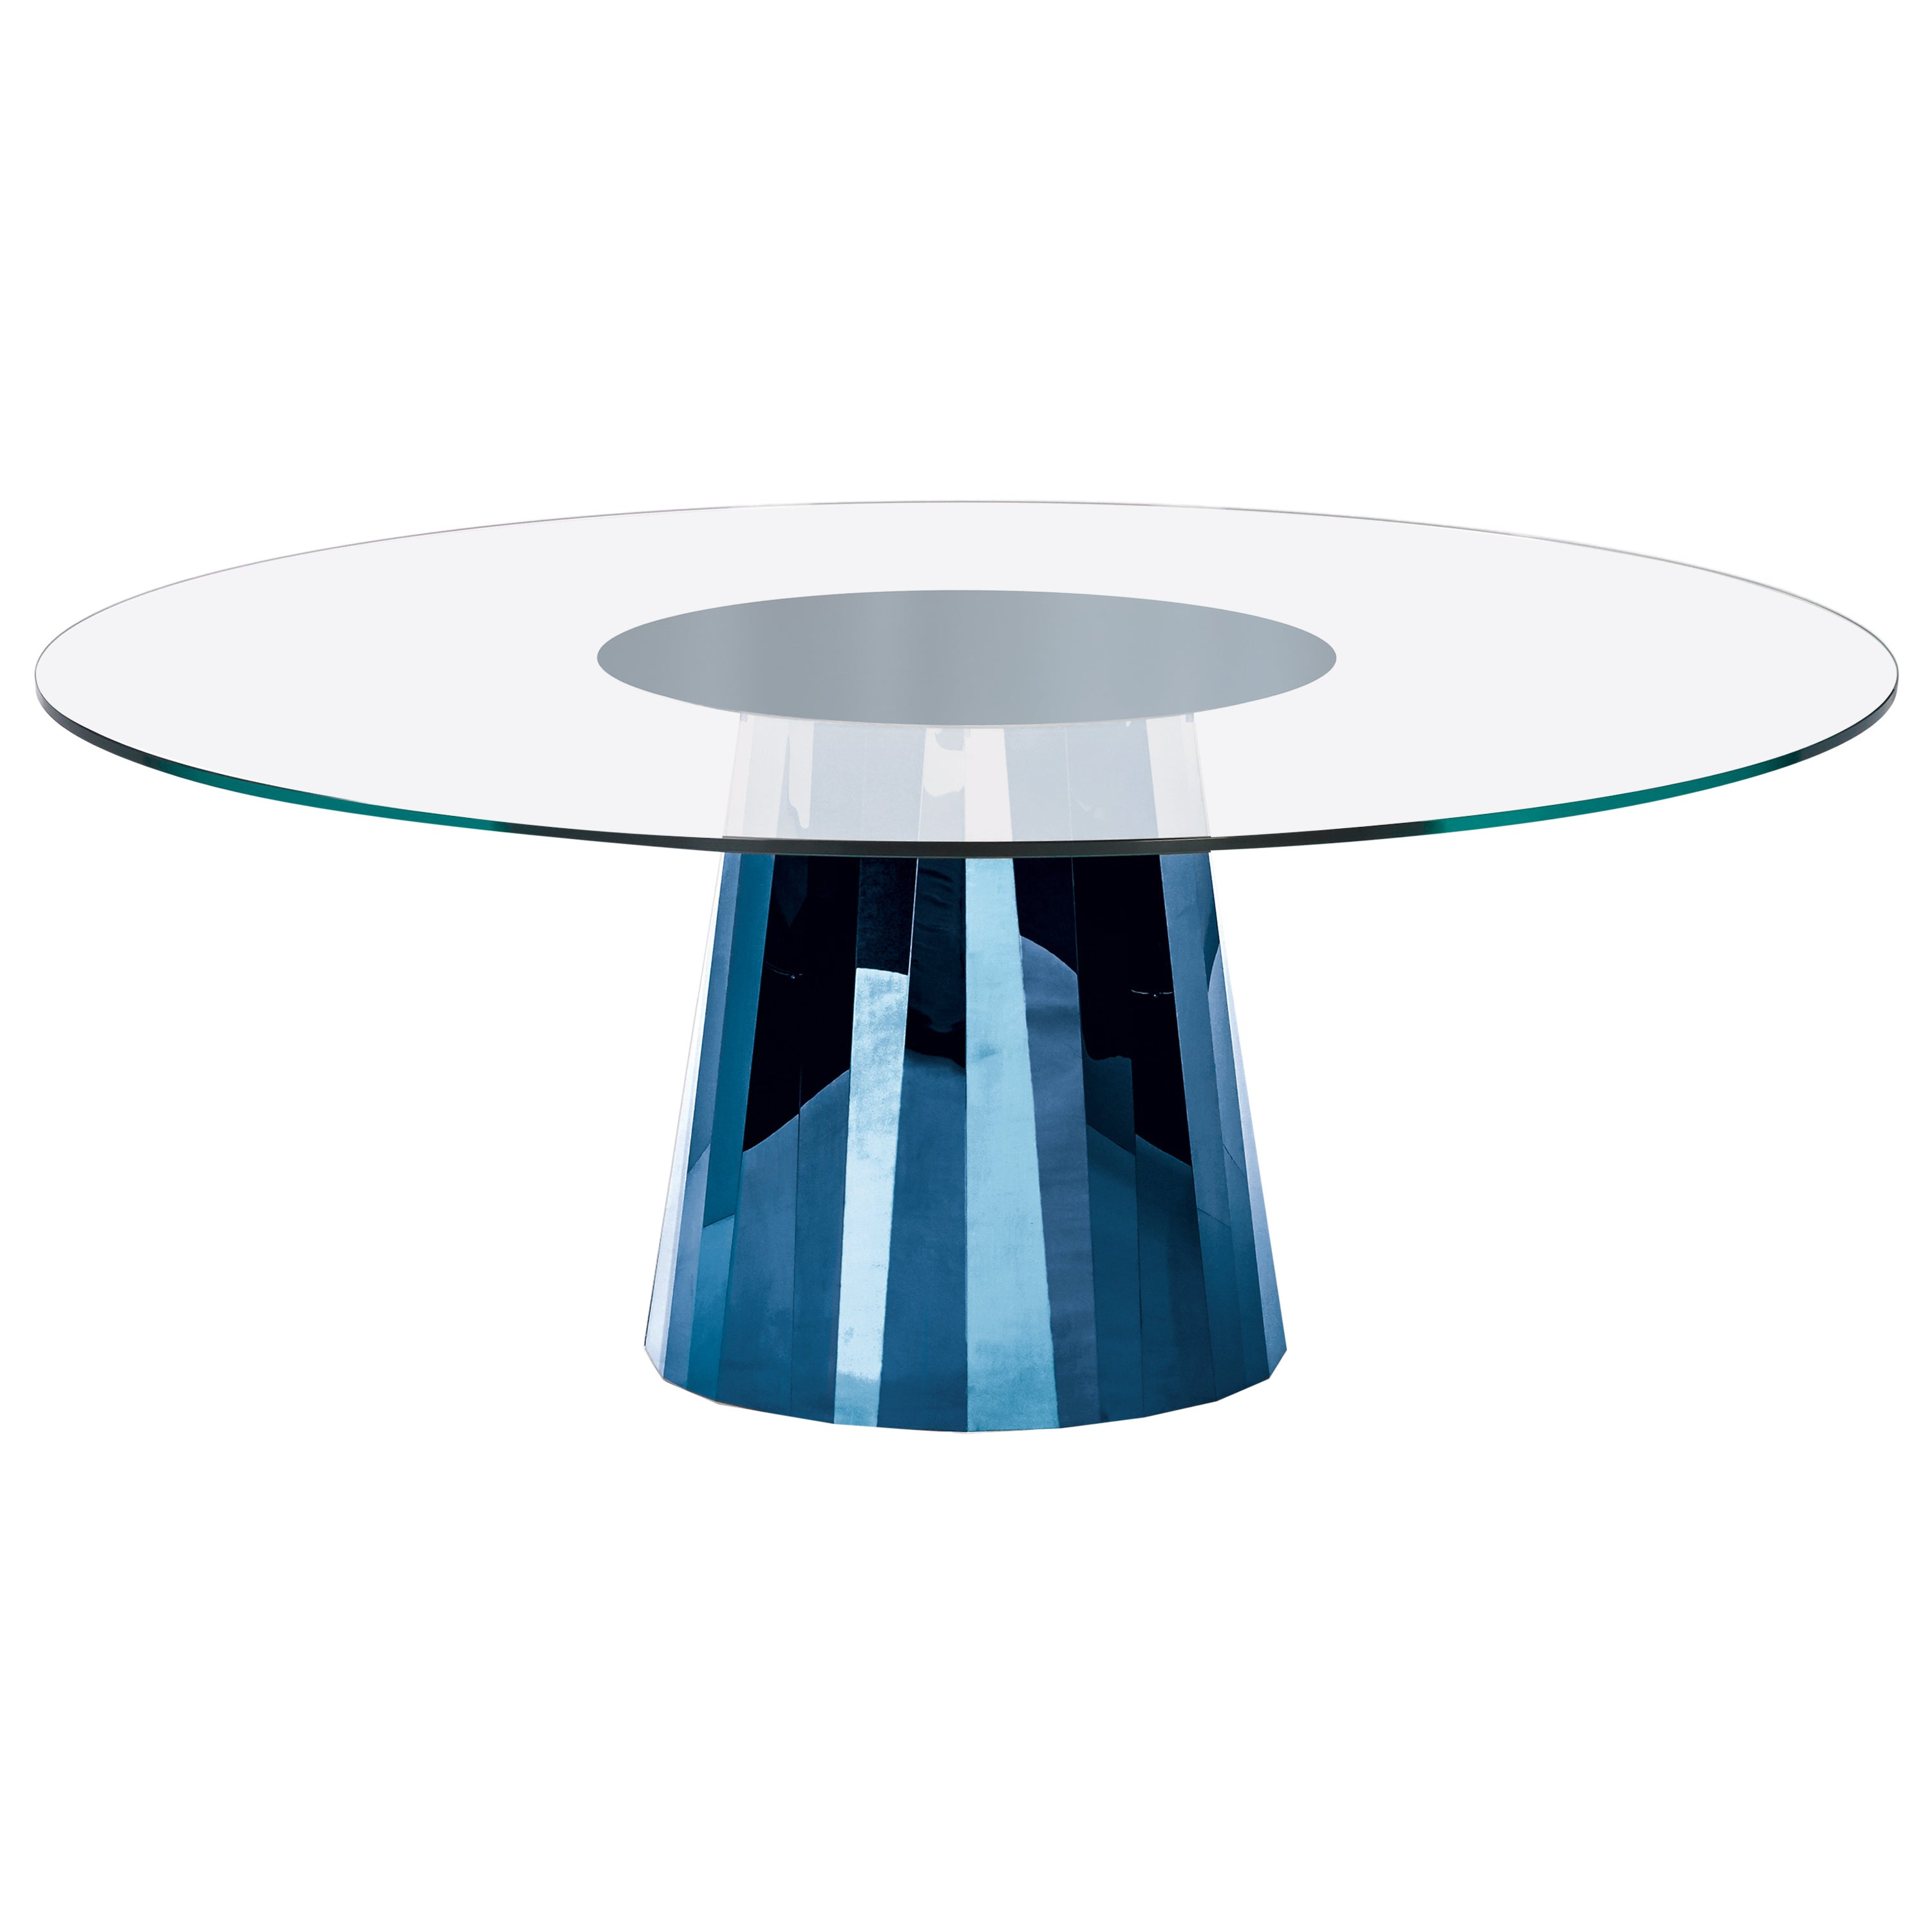 ClassiCon Pli Table in Blue with Crystal Glass Top by Victoria Wilmotte